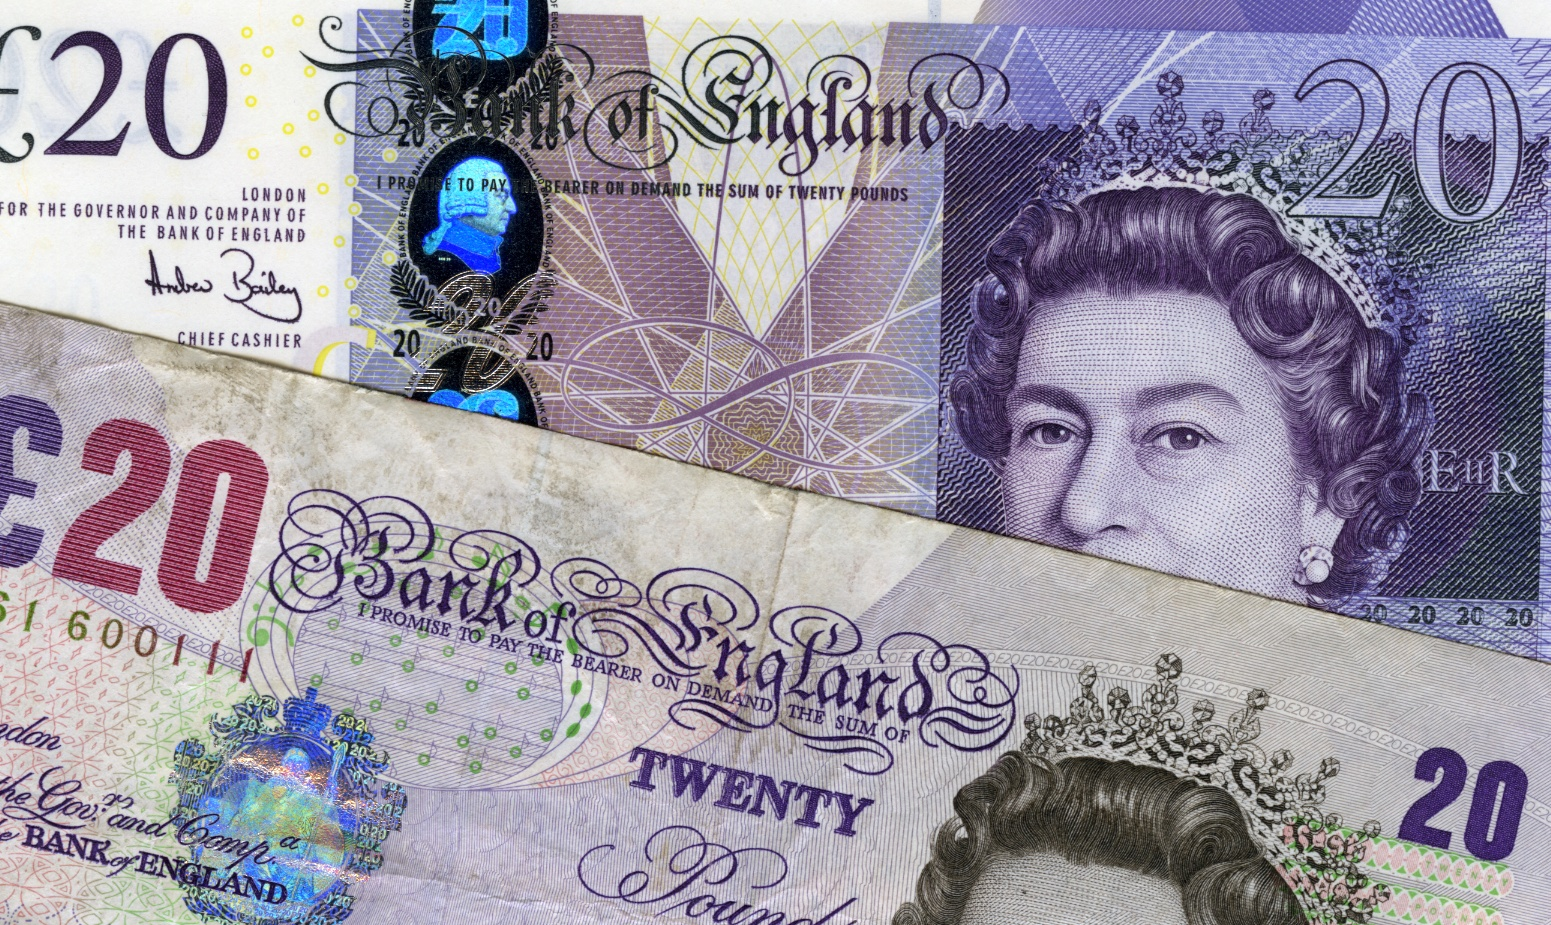 UK-banknotes-old-and-new-GBP-20-twenty-pound-notes-purple-hue-front-1-DHD